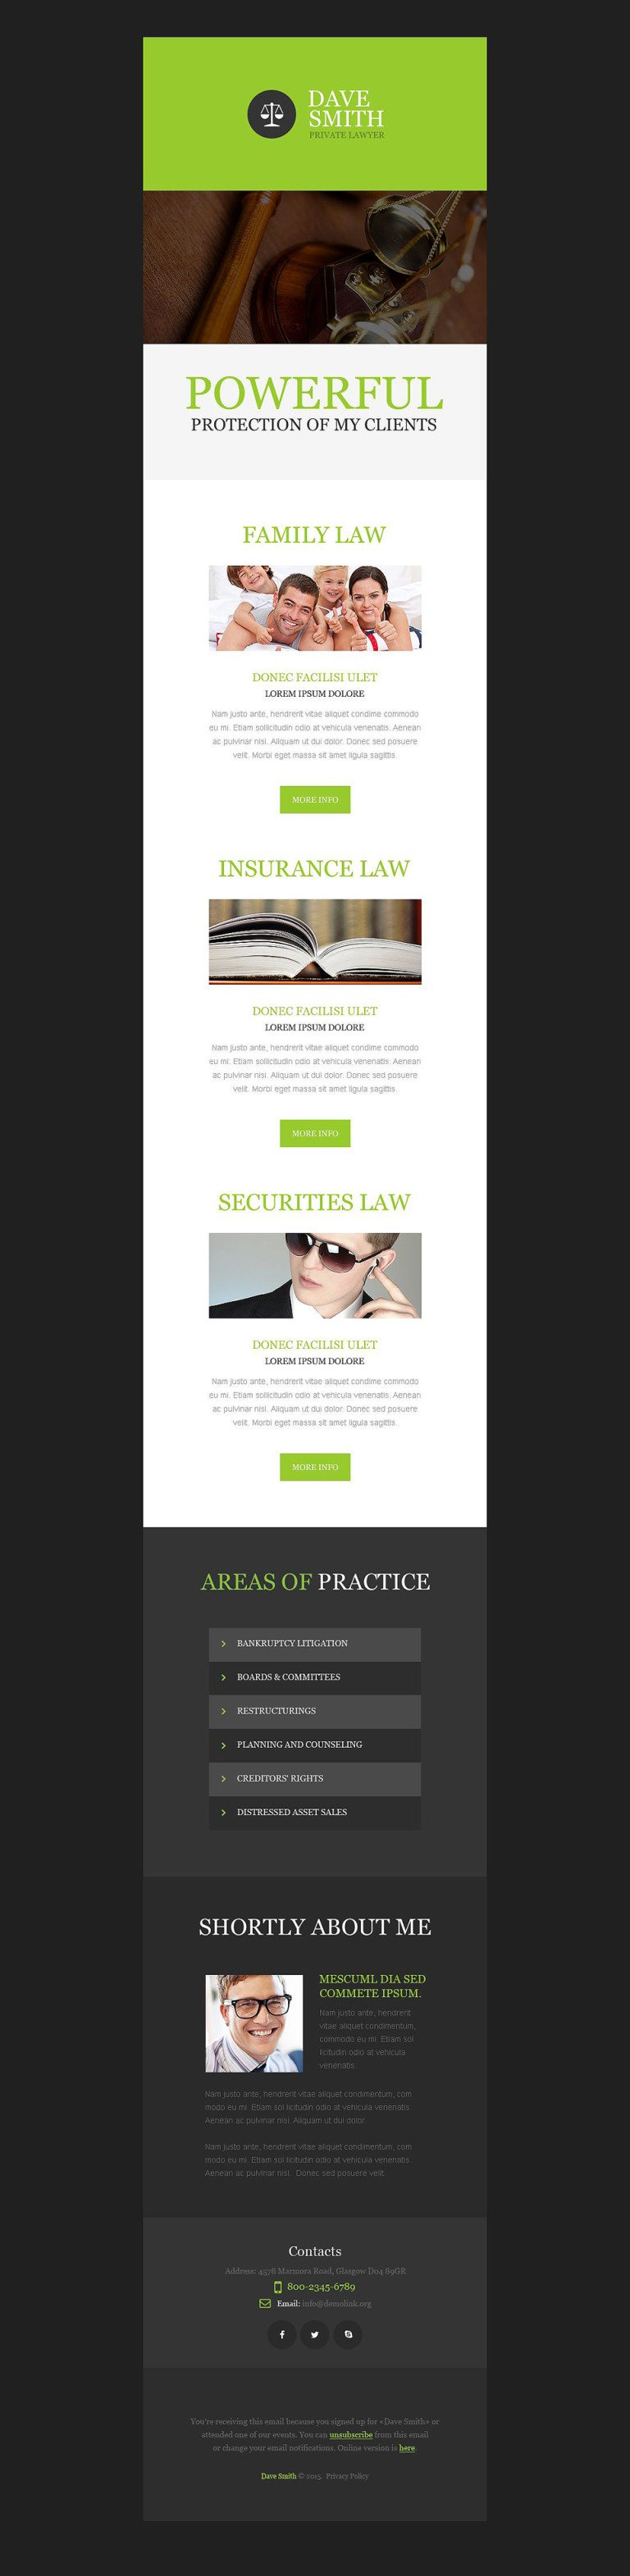 Law Firm Newsletter Template New Screenshots BIG